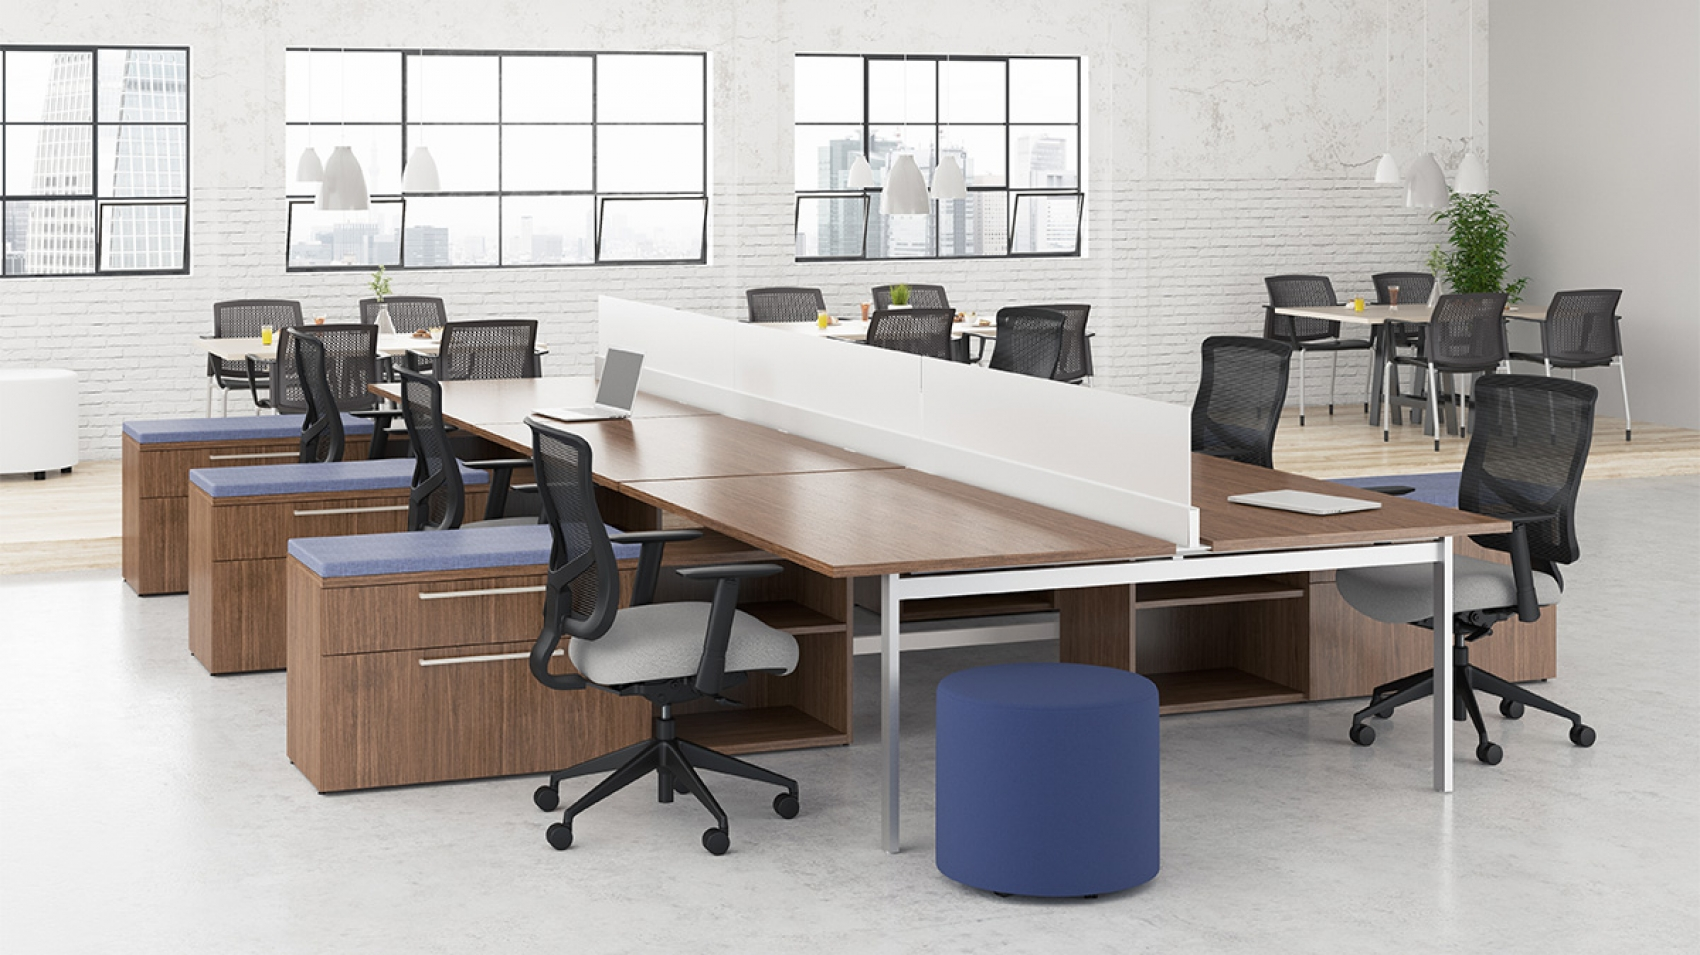 ofs brands is committed to the quickest possible delivery of a broad selection of quickship casegoods tables seating and healthcare products within 12 - How To Ship Furniture